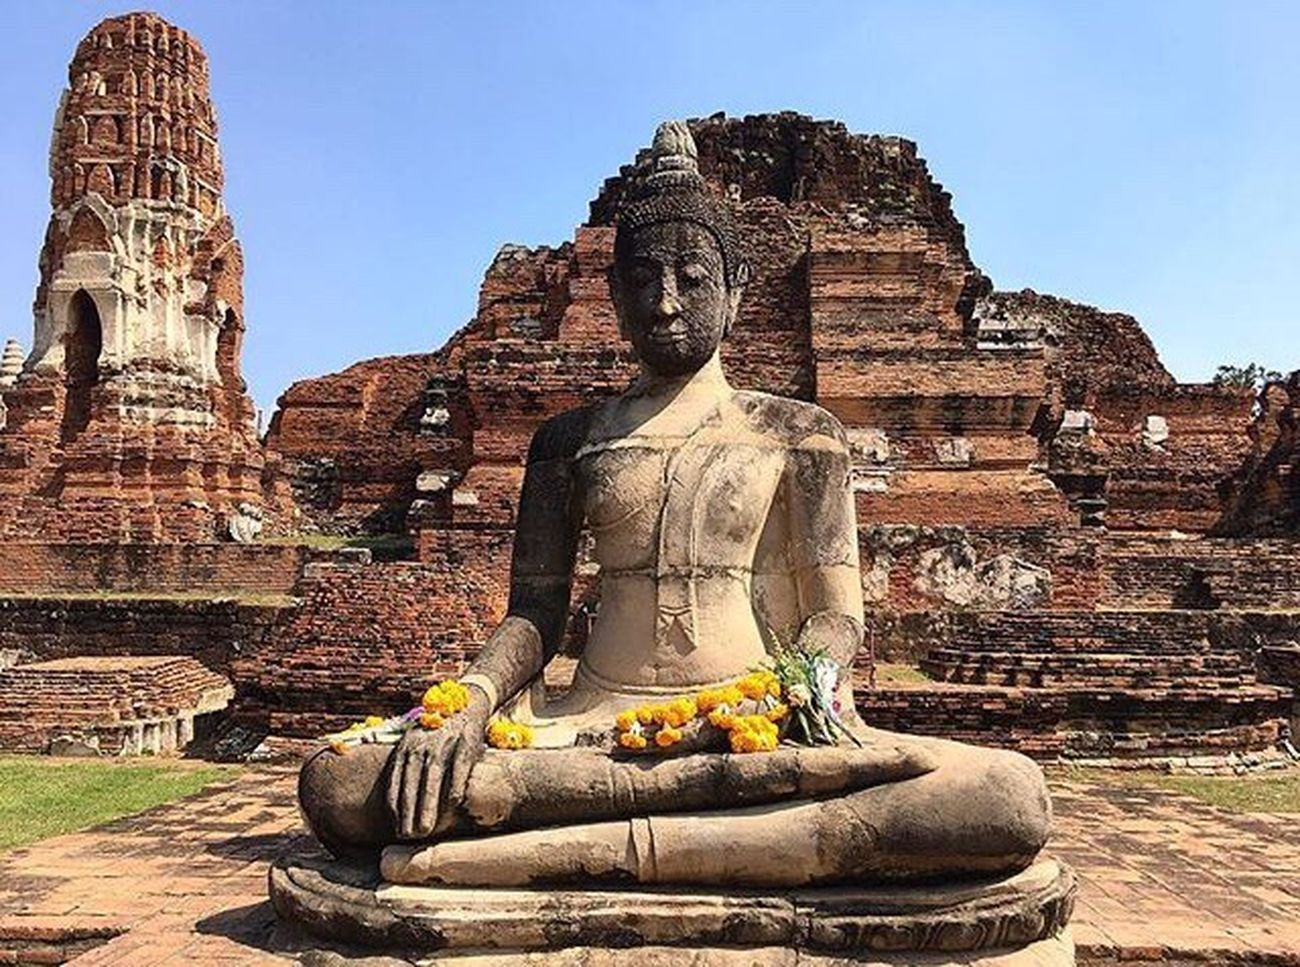 Religion Statue History Holly Sacred Places Archaeological Sites Amazing Thailand Amazing Thailand Sacred Holyplace Temple Buddastatue Ayutthaya Buddha Amazing Place Hot Day